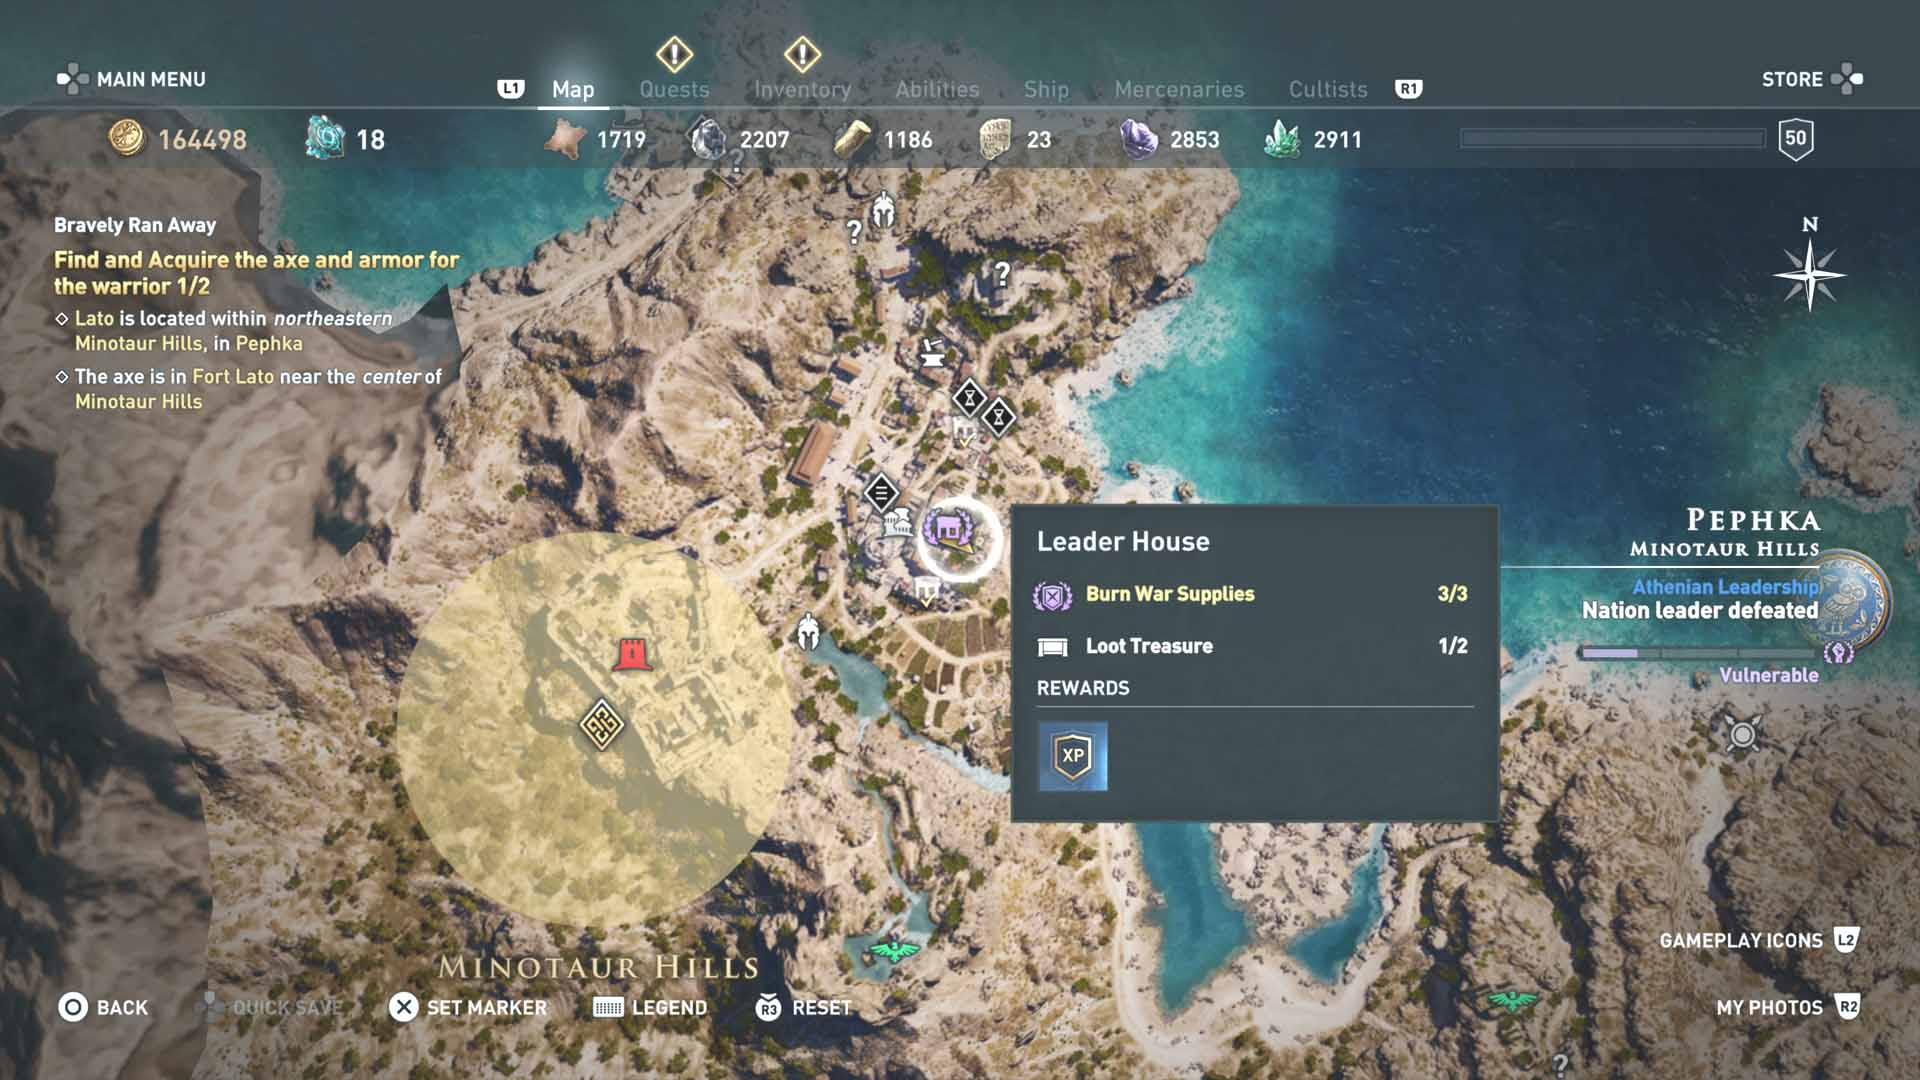 All Loot Treasure And Ancient Tablet Locations Pephka All